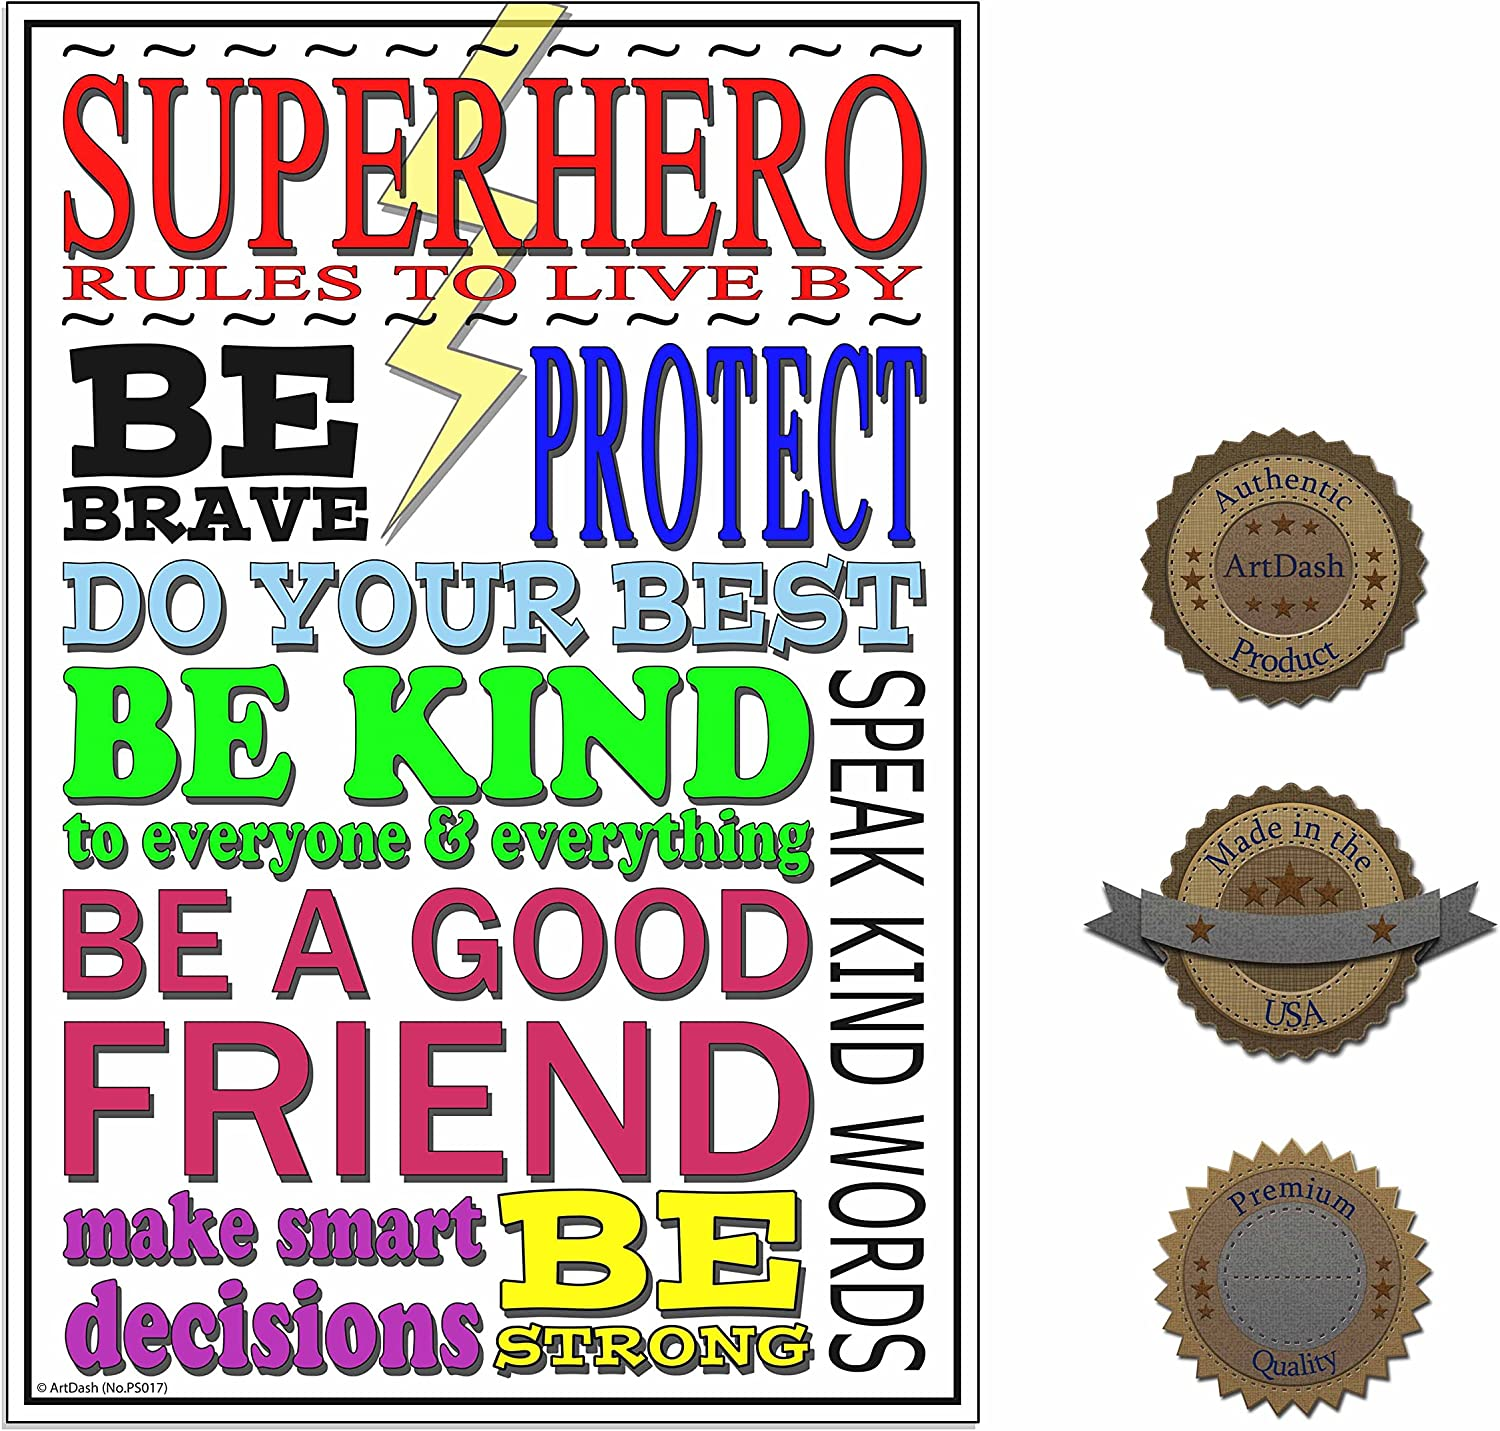 SUPERHERO RULES INSPIRATIONAL MOTIVATIONAL POSTER PRINT PICTURE